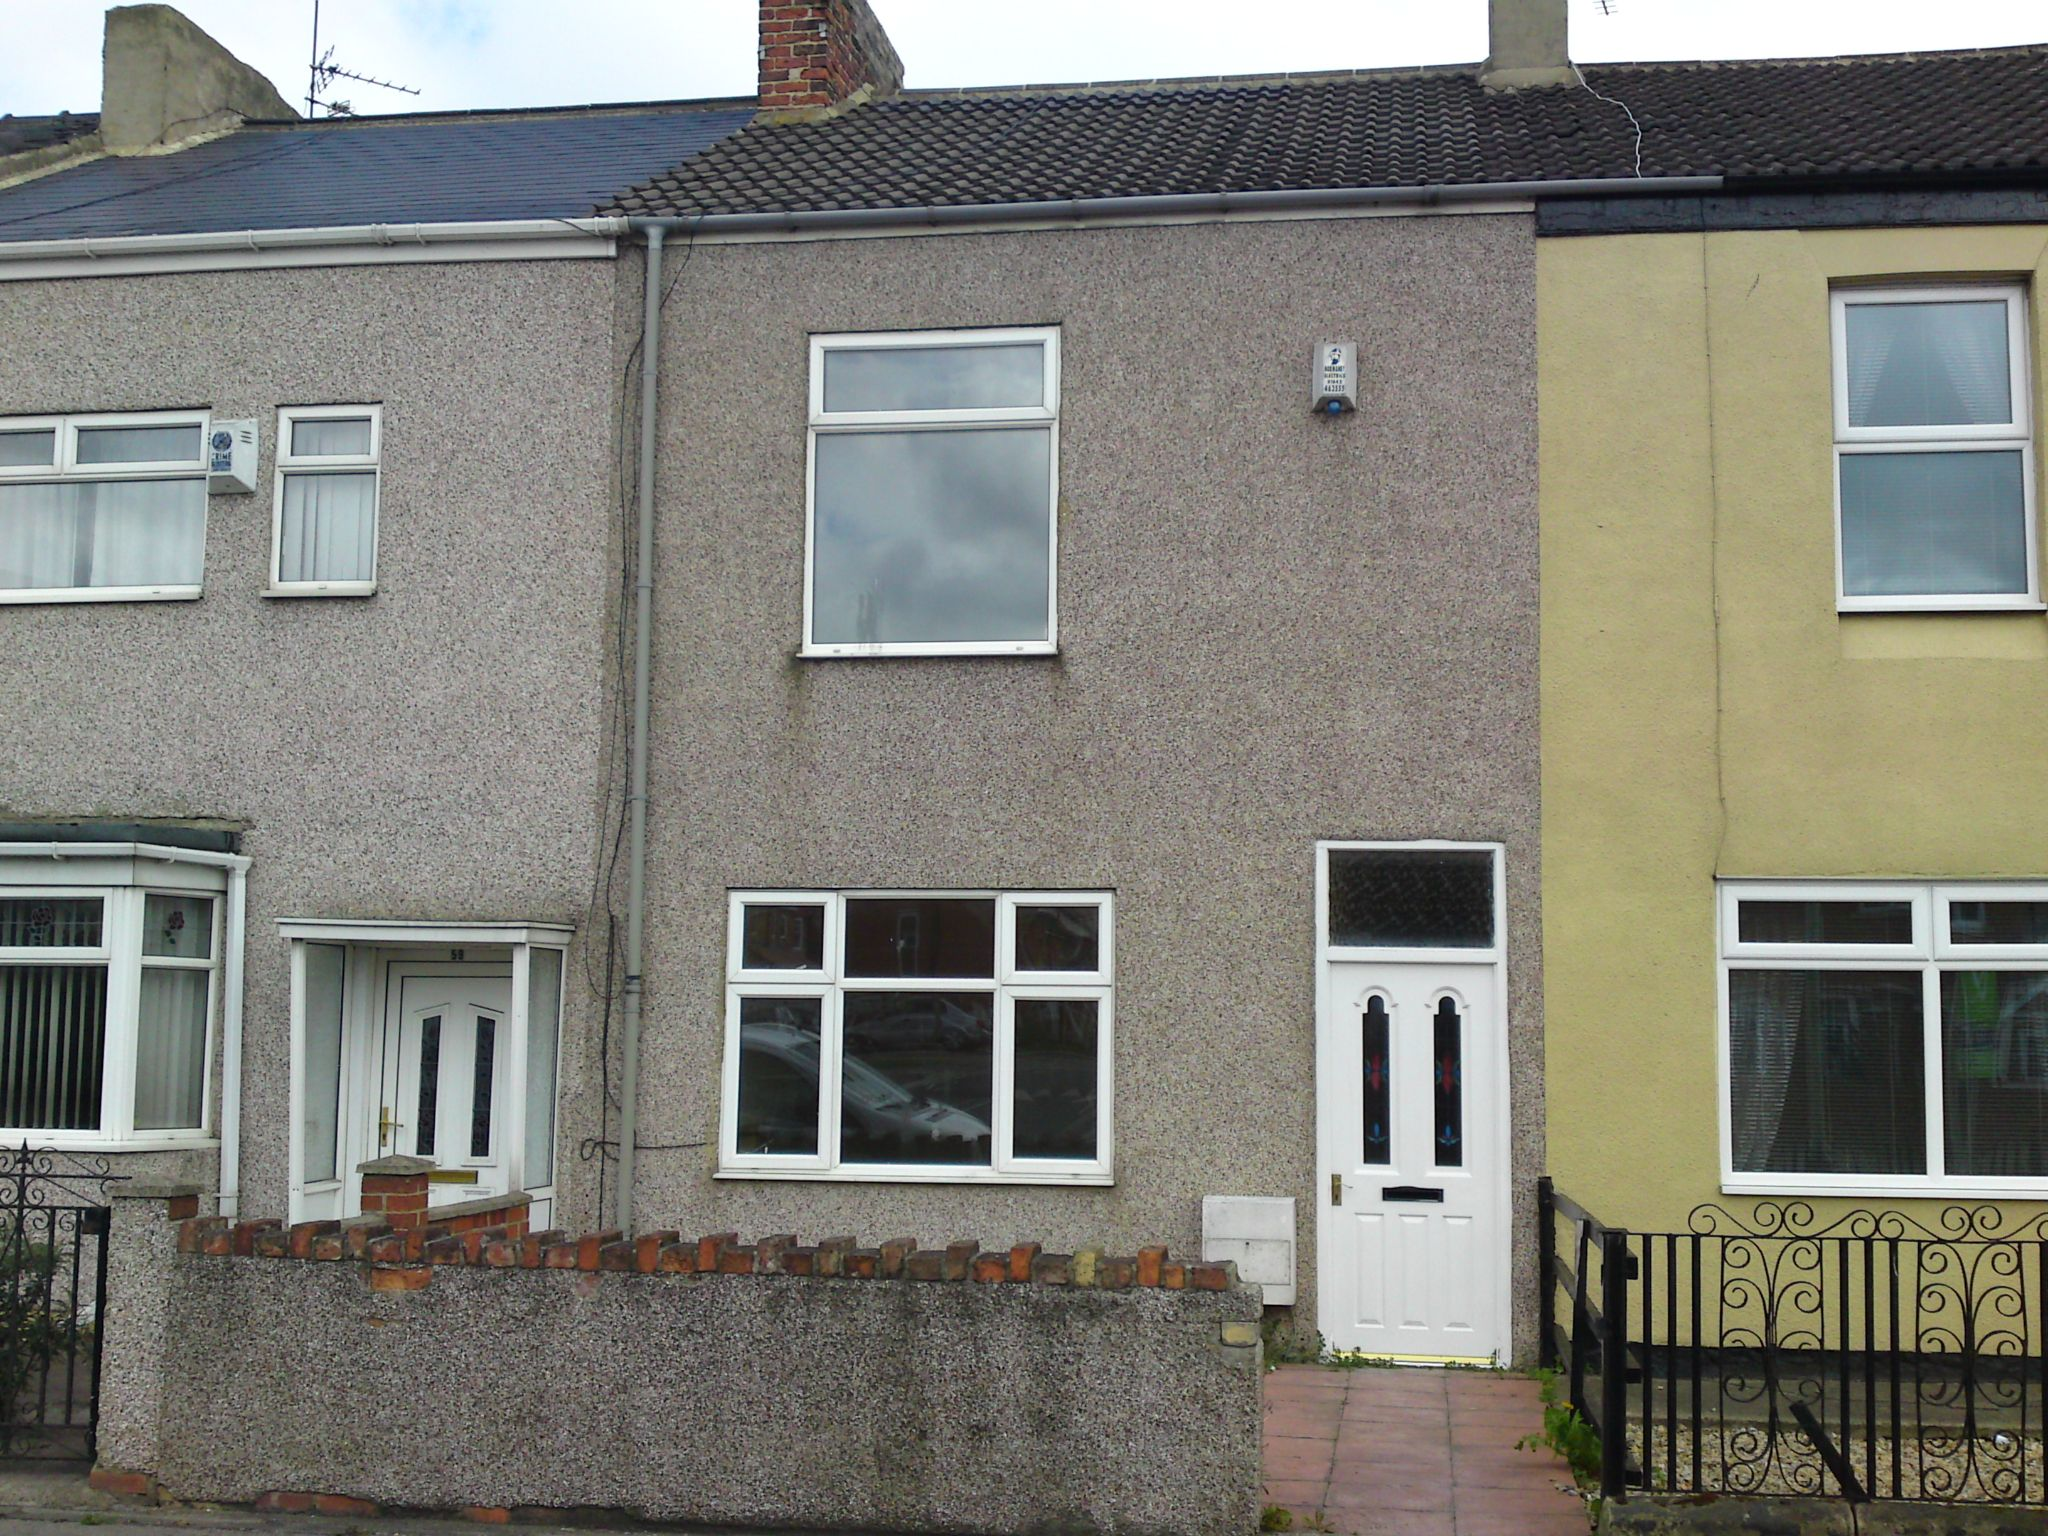 2 bedroom mid terraced house For Sale in Darlington - Photograph 1.